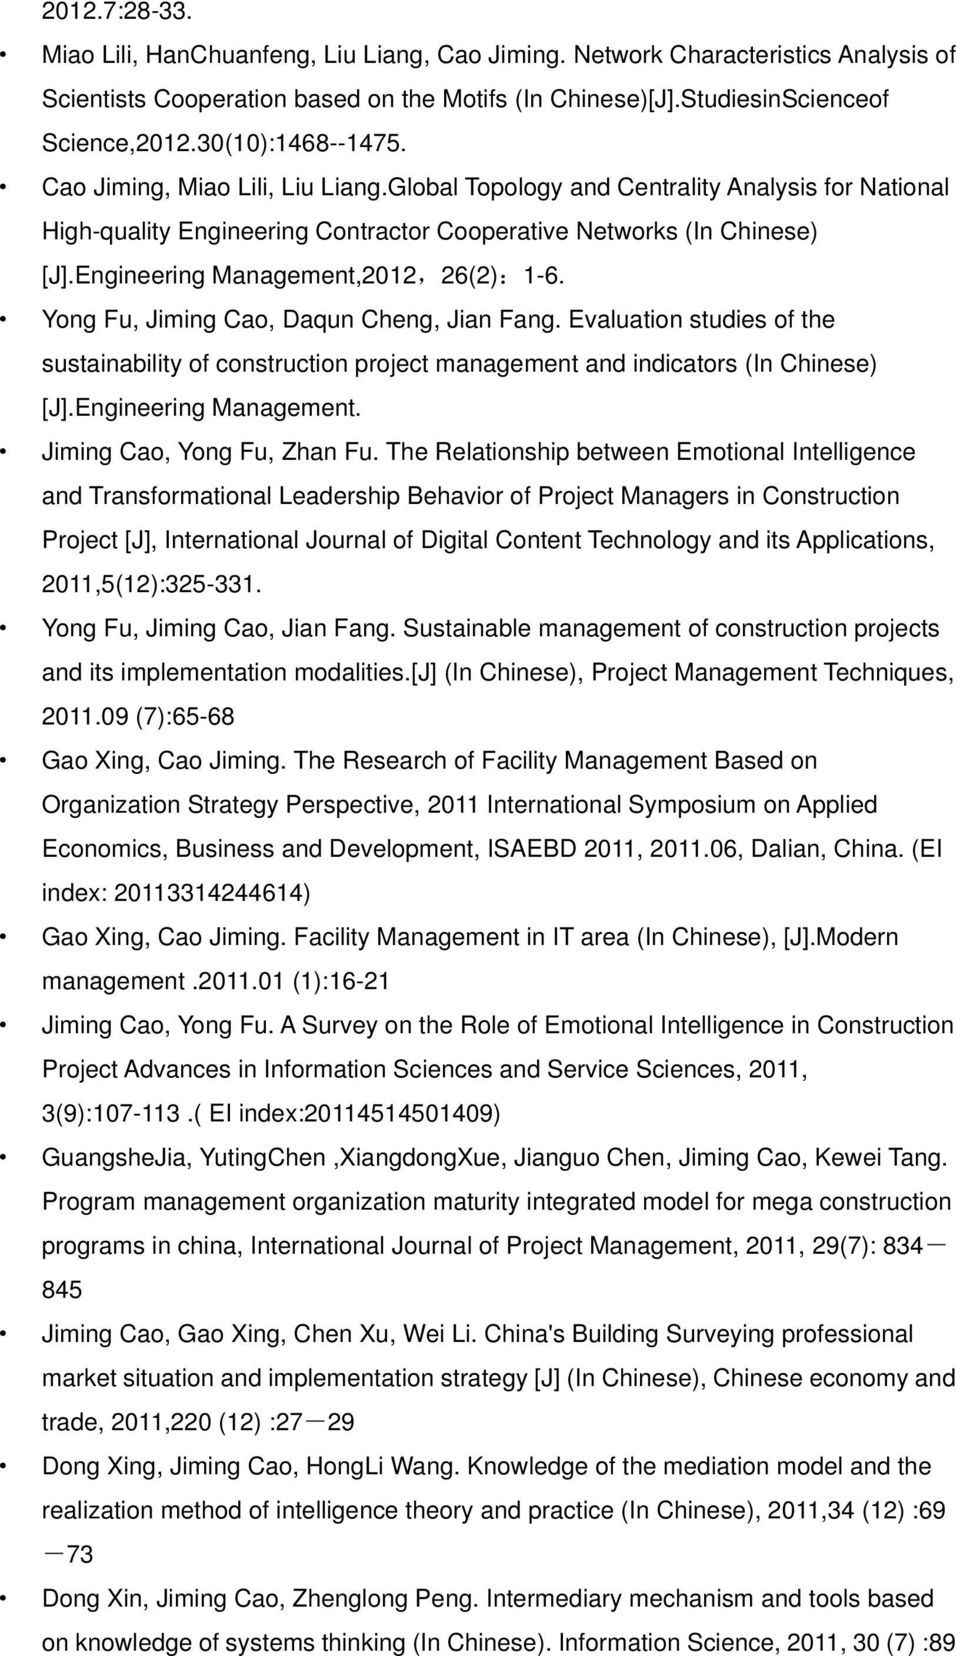 Engineering Management,2012,26(2):1-6. Yong Fu, Jiming Cao, Daqun Cheng, Jian Fang. Evaluation studies of the sustainability of construction project management and indicators (In Chinese) [J].